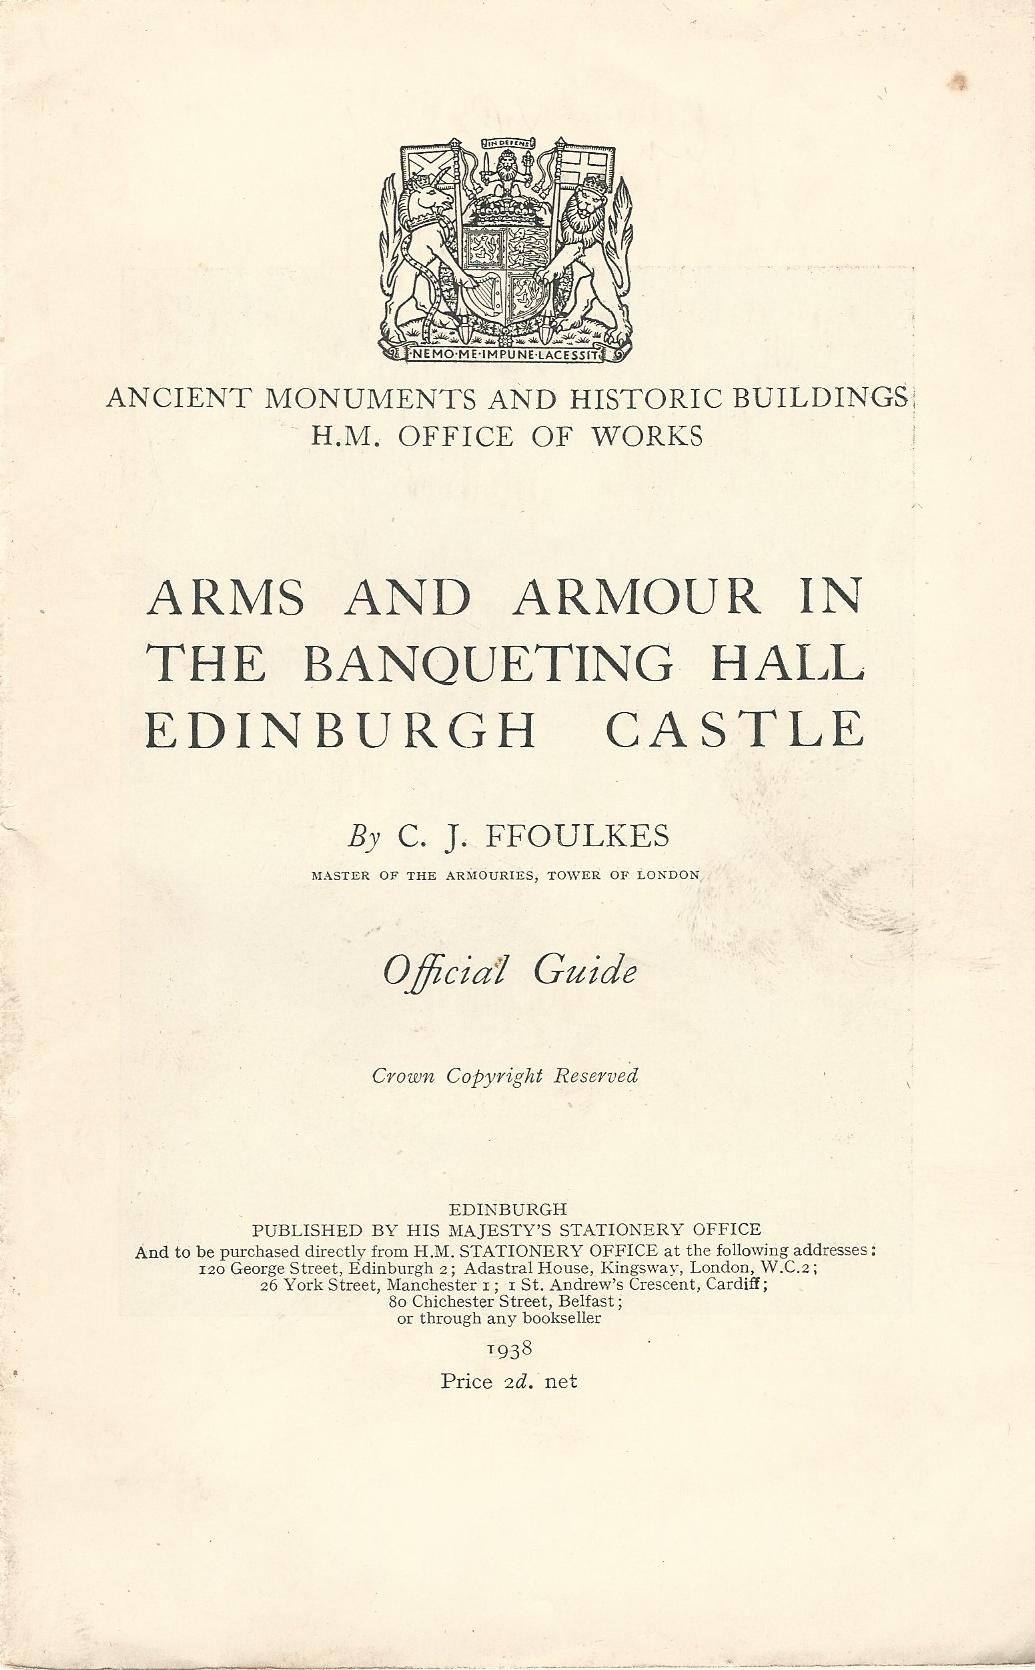 Image for Arms and Armour in the Banqueting Hall Edinburgh Castle.